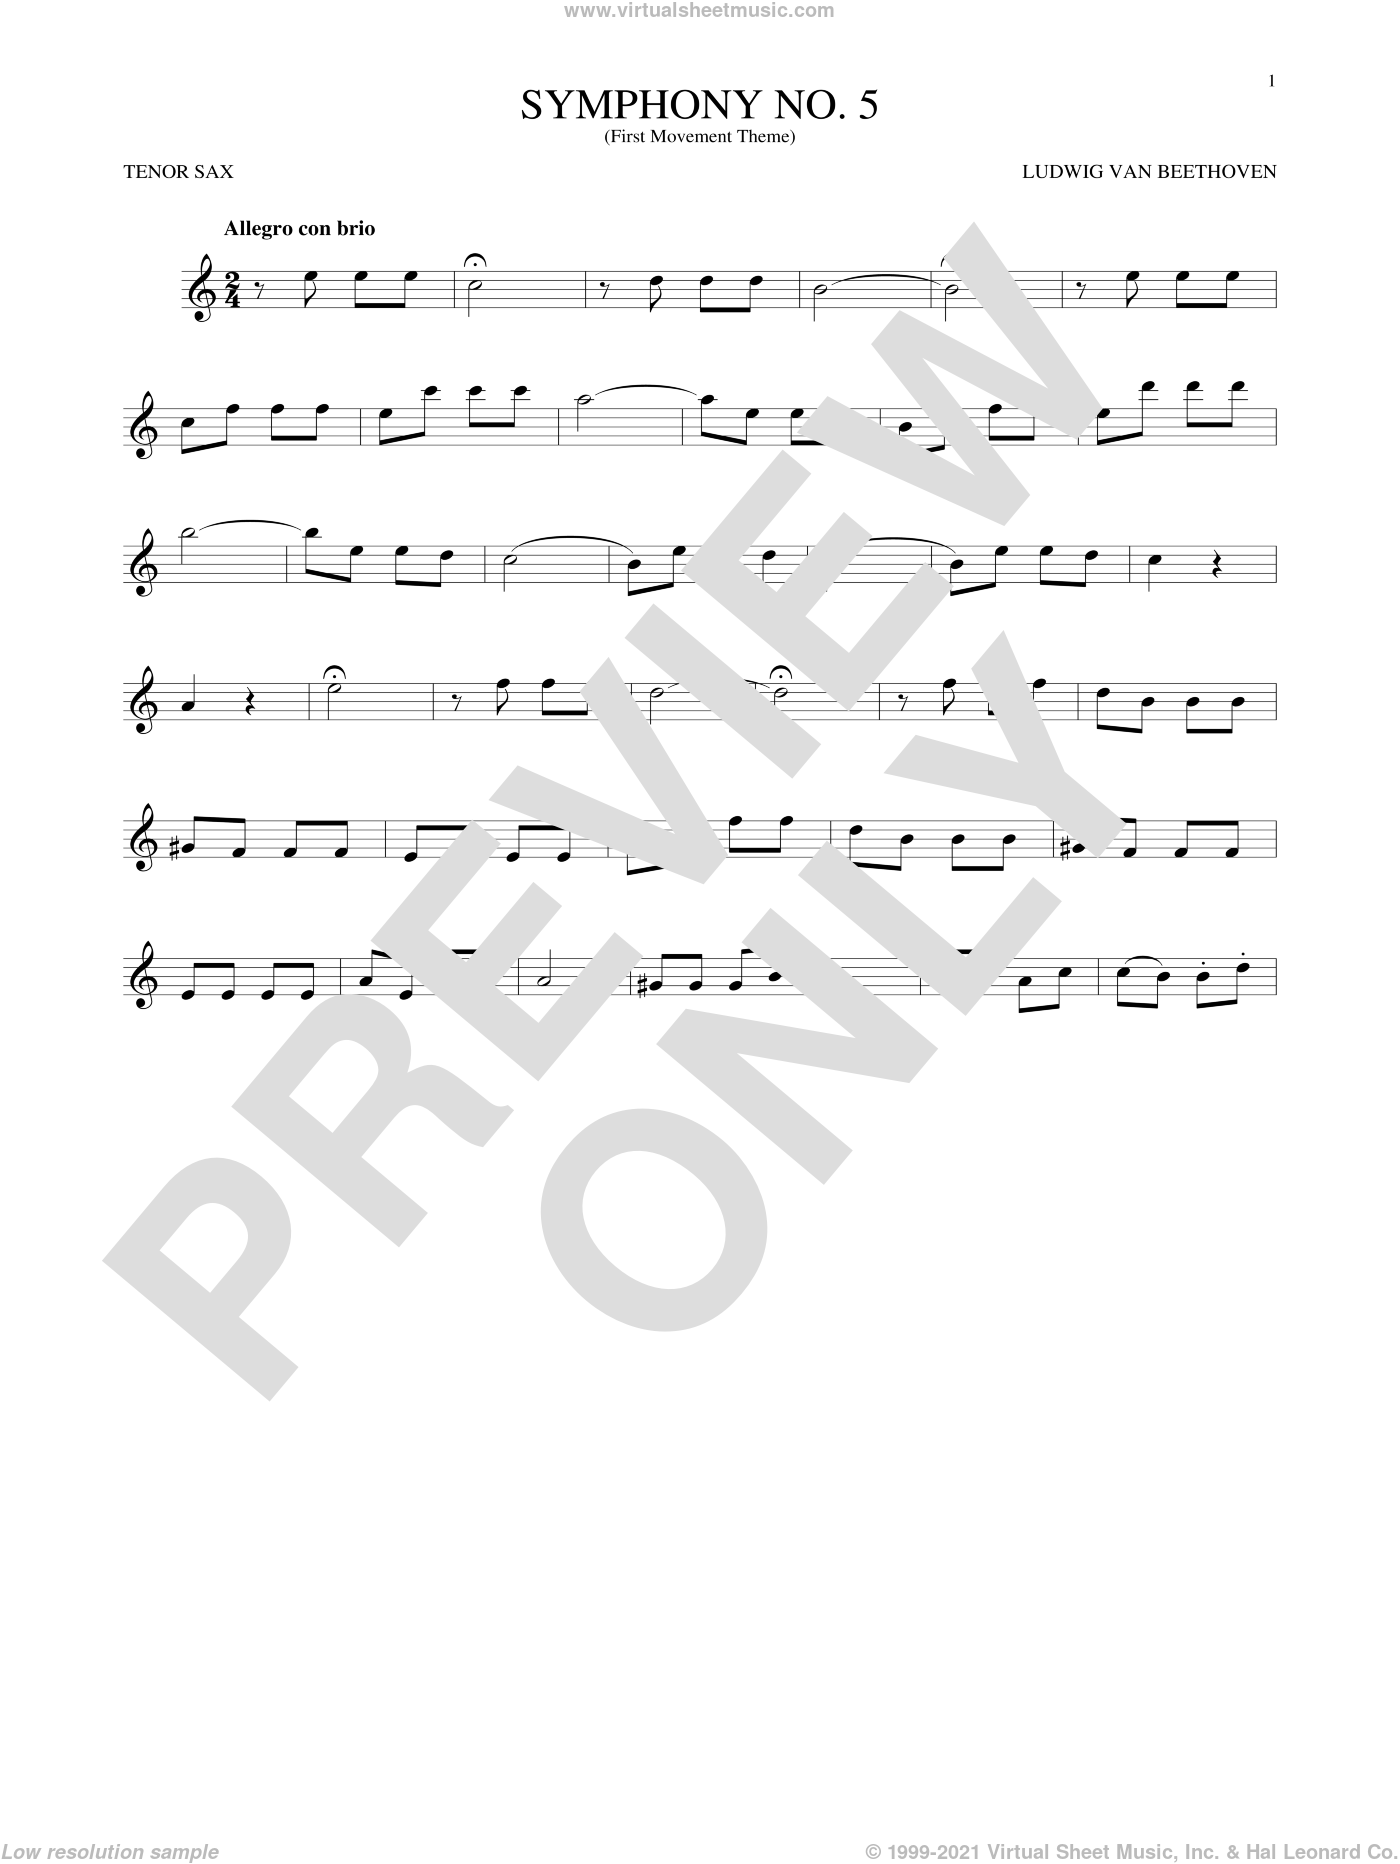 Symphony No. 5 In C Minor, First Movement Excerpt sheet music for tenor saxophone solo by Ludwig van Beethoven, classical score, intermediate skill level